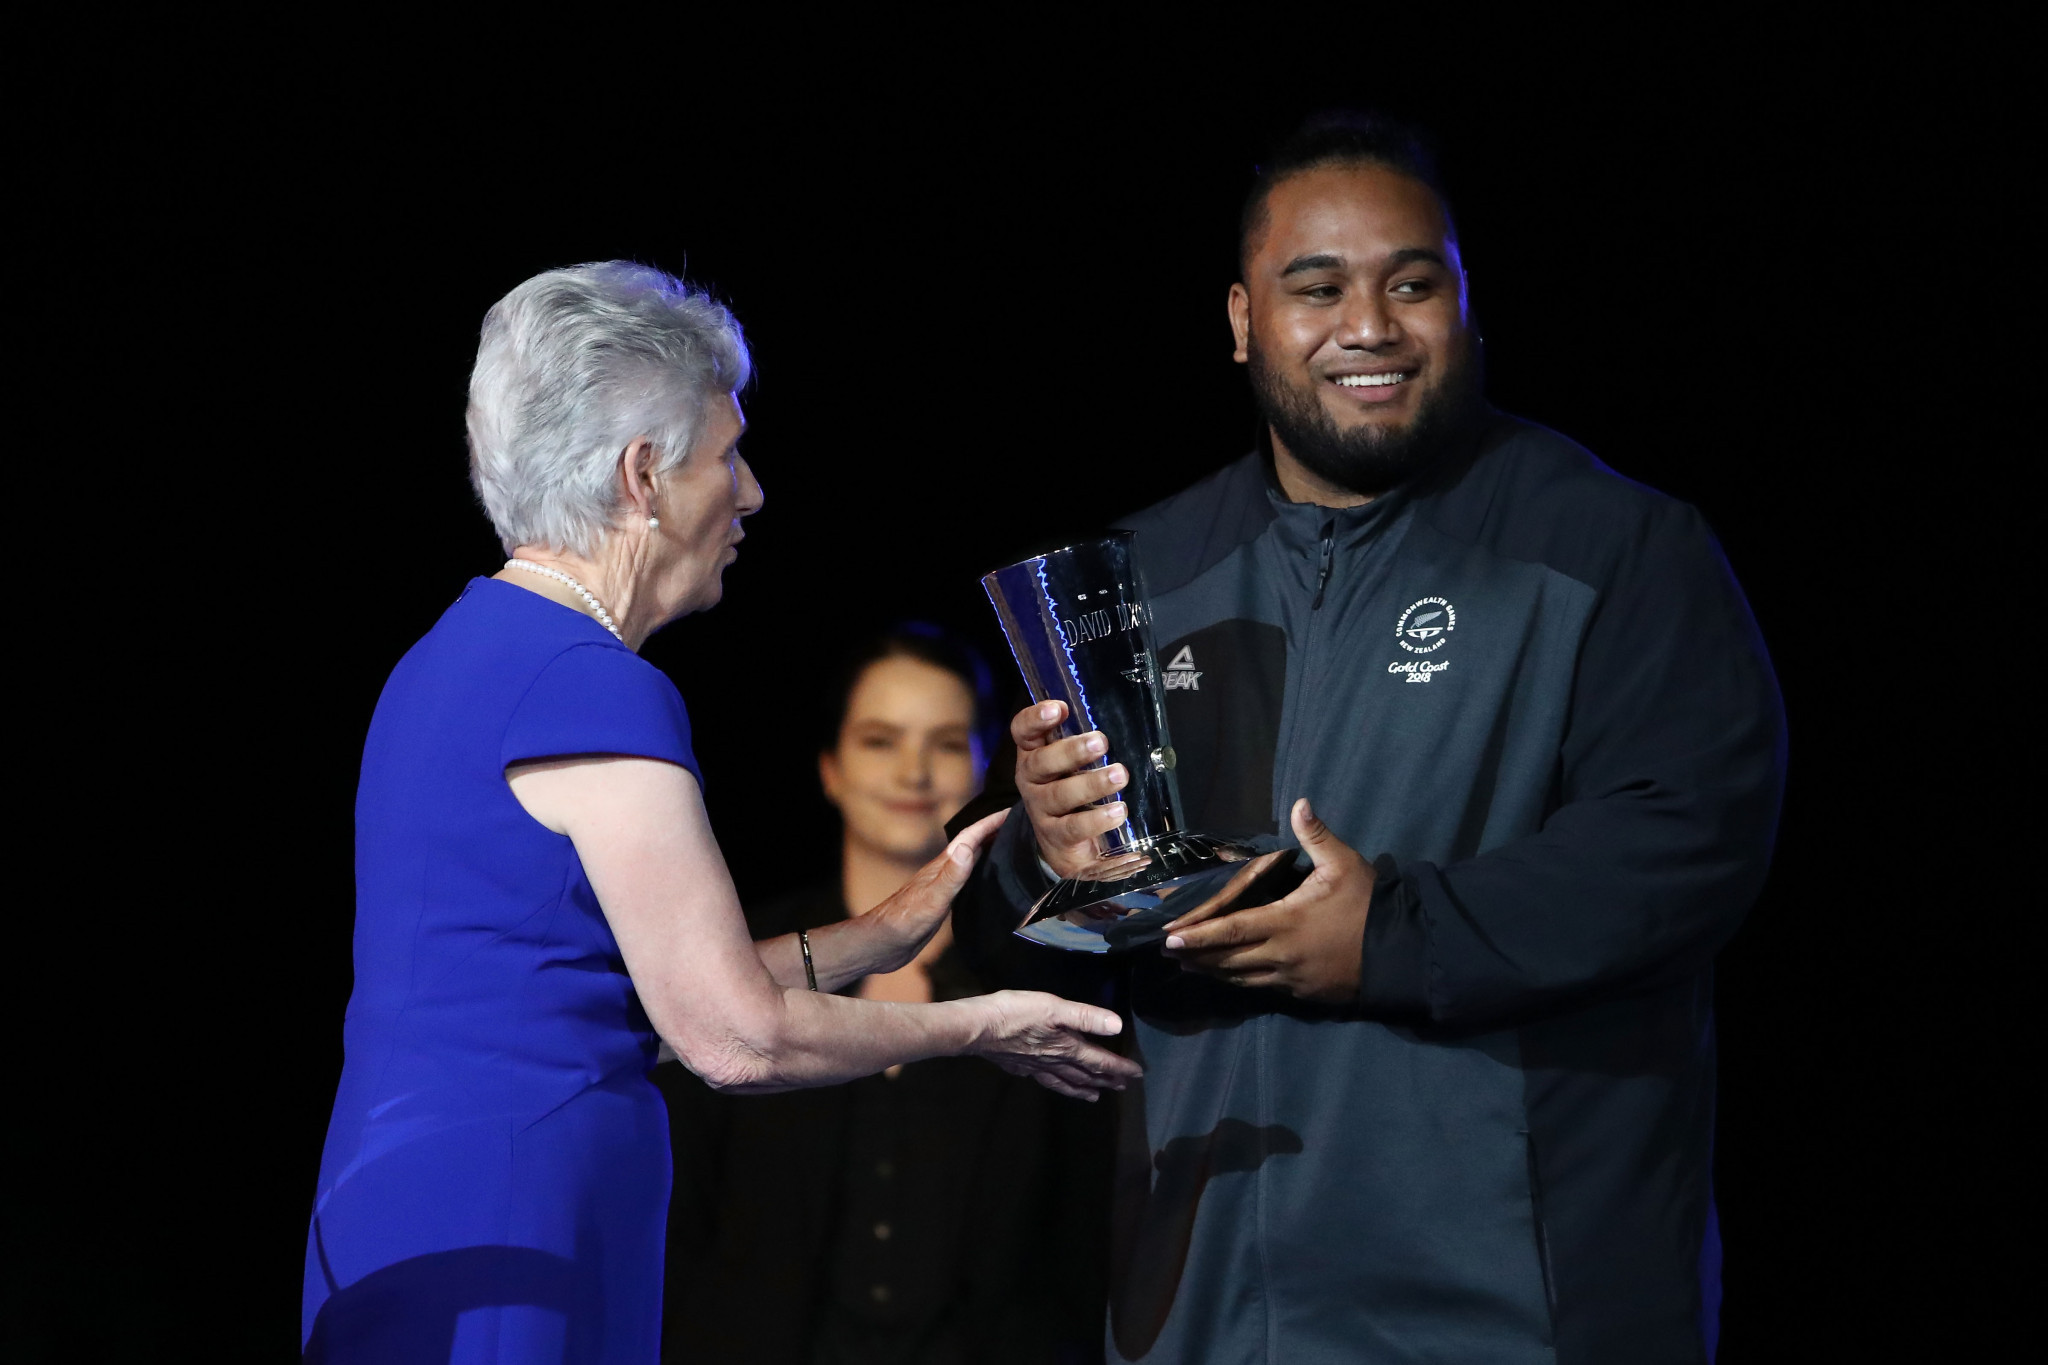 New Zealand weightlifter Liti given David Dixon Award for sportsmanship during Gold Coast 2018